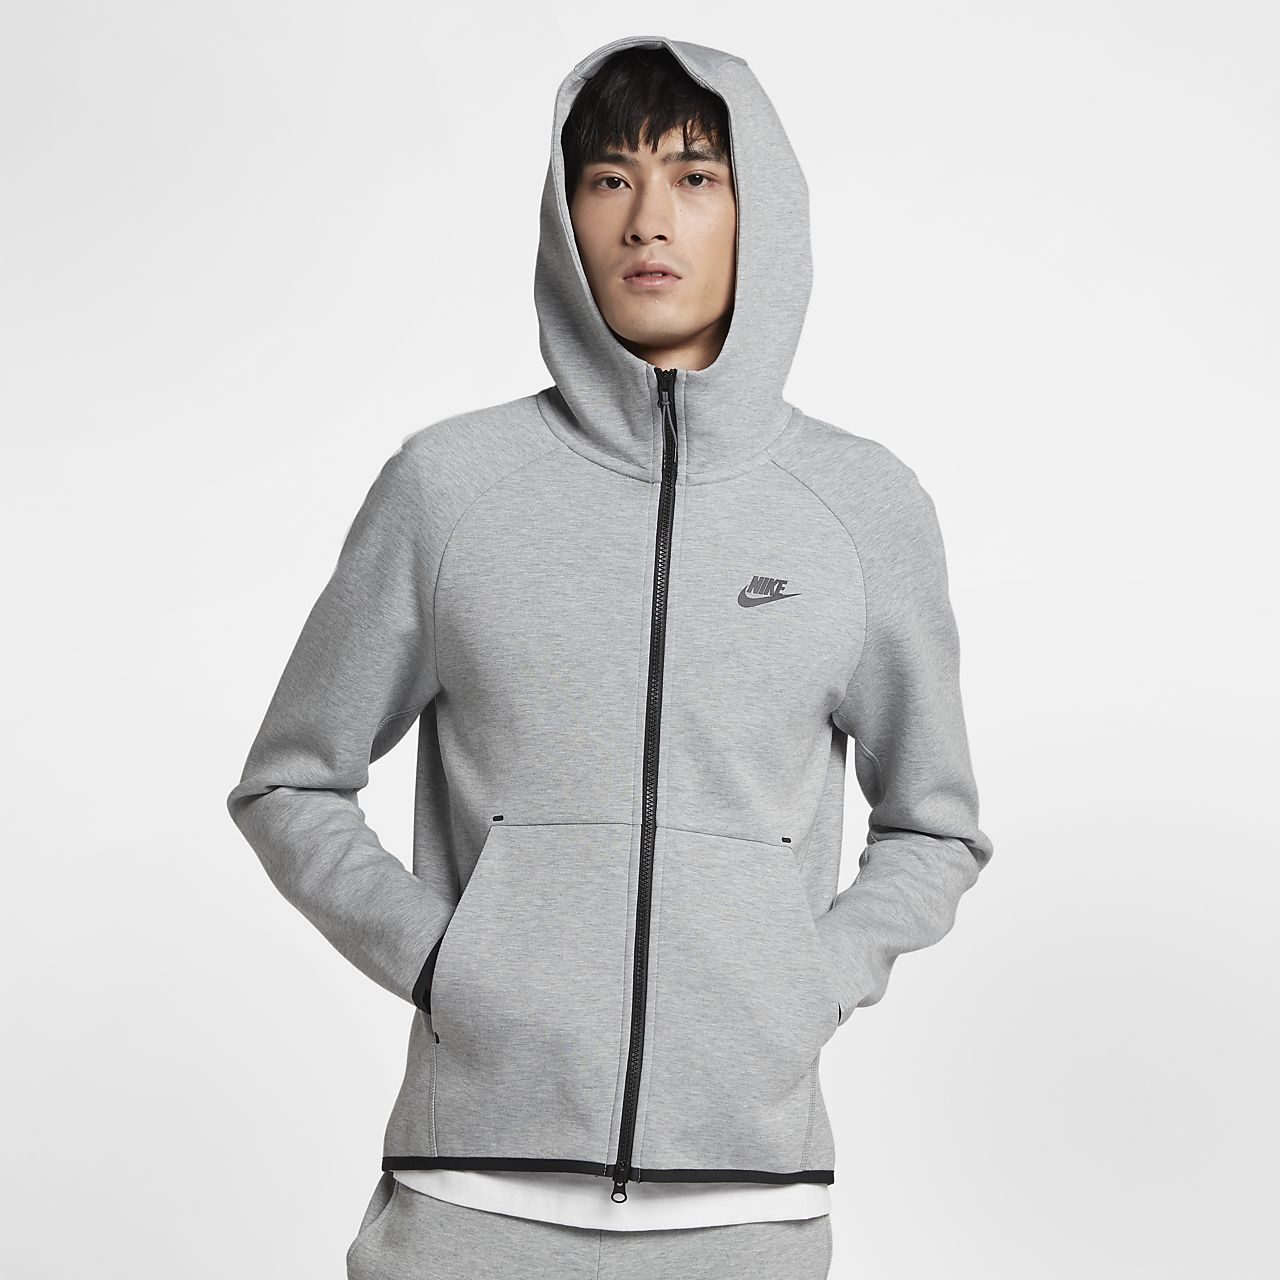 c3402919f83e Nike Sportswear Tech Fleece Men s Full-Zip Hoodie. Nike.com VN